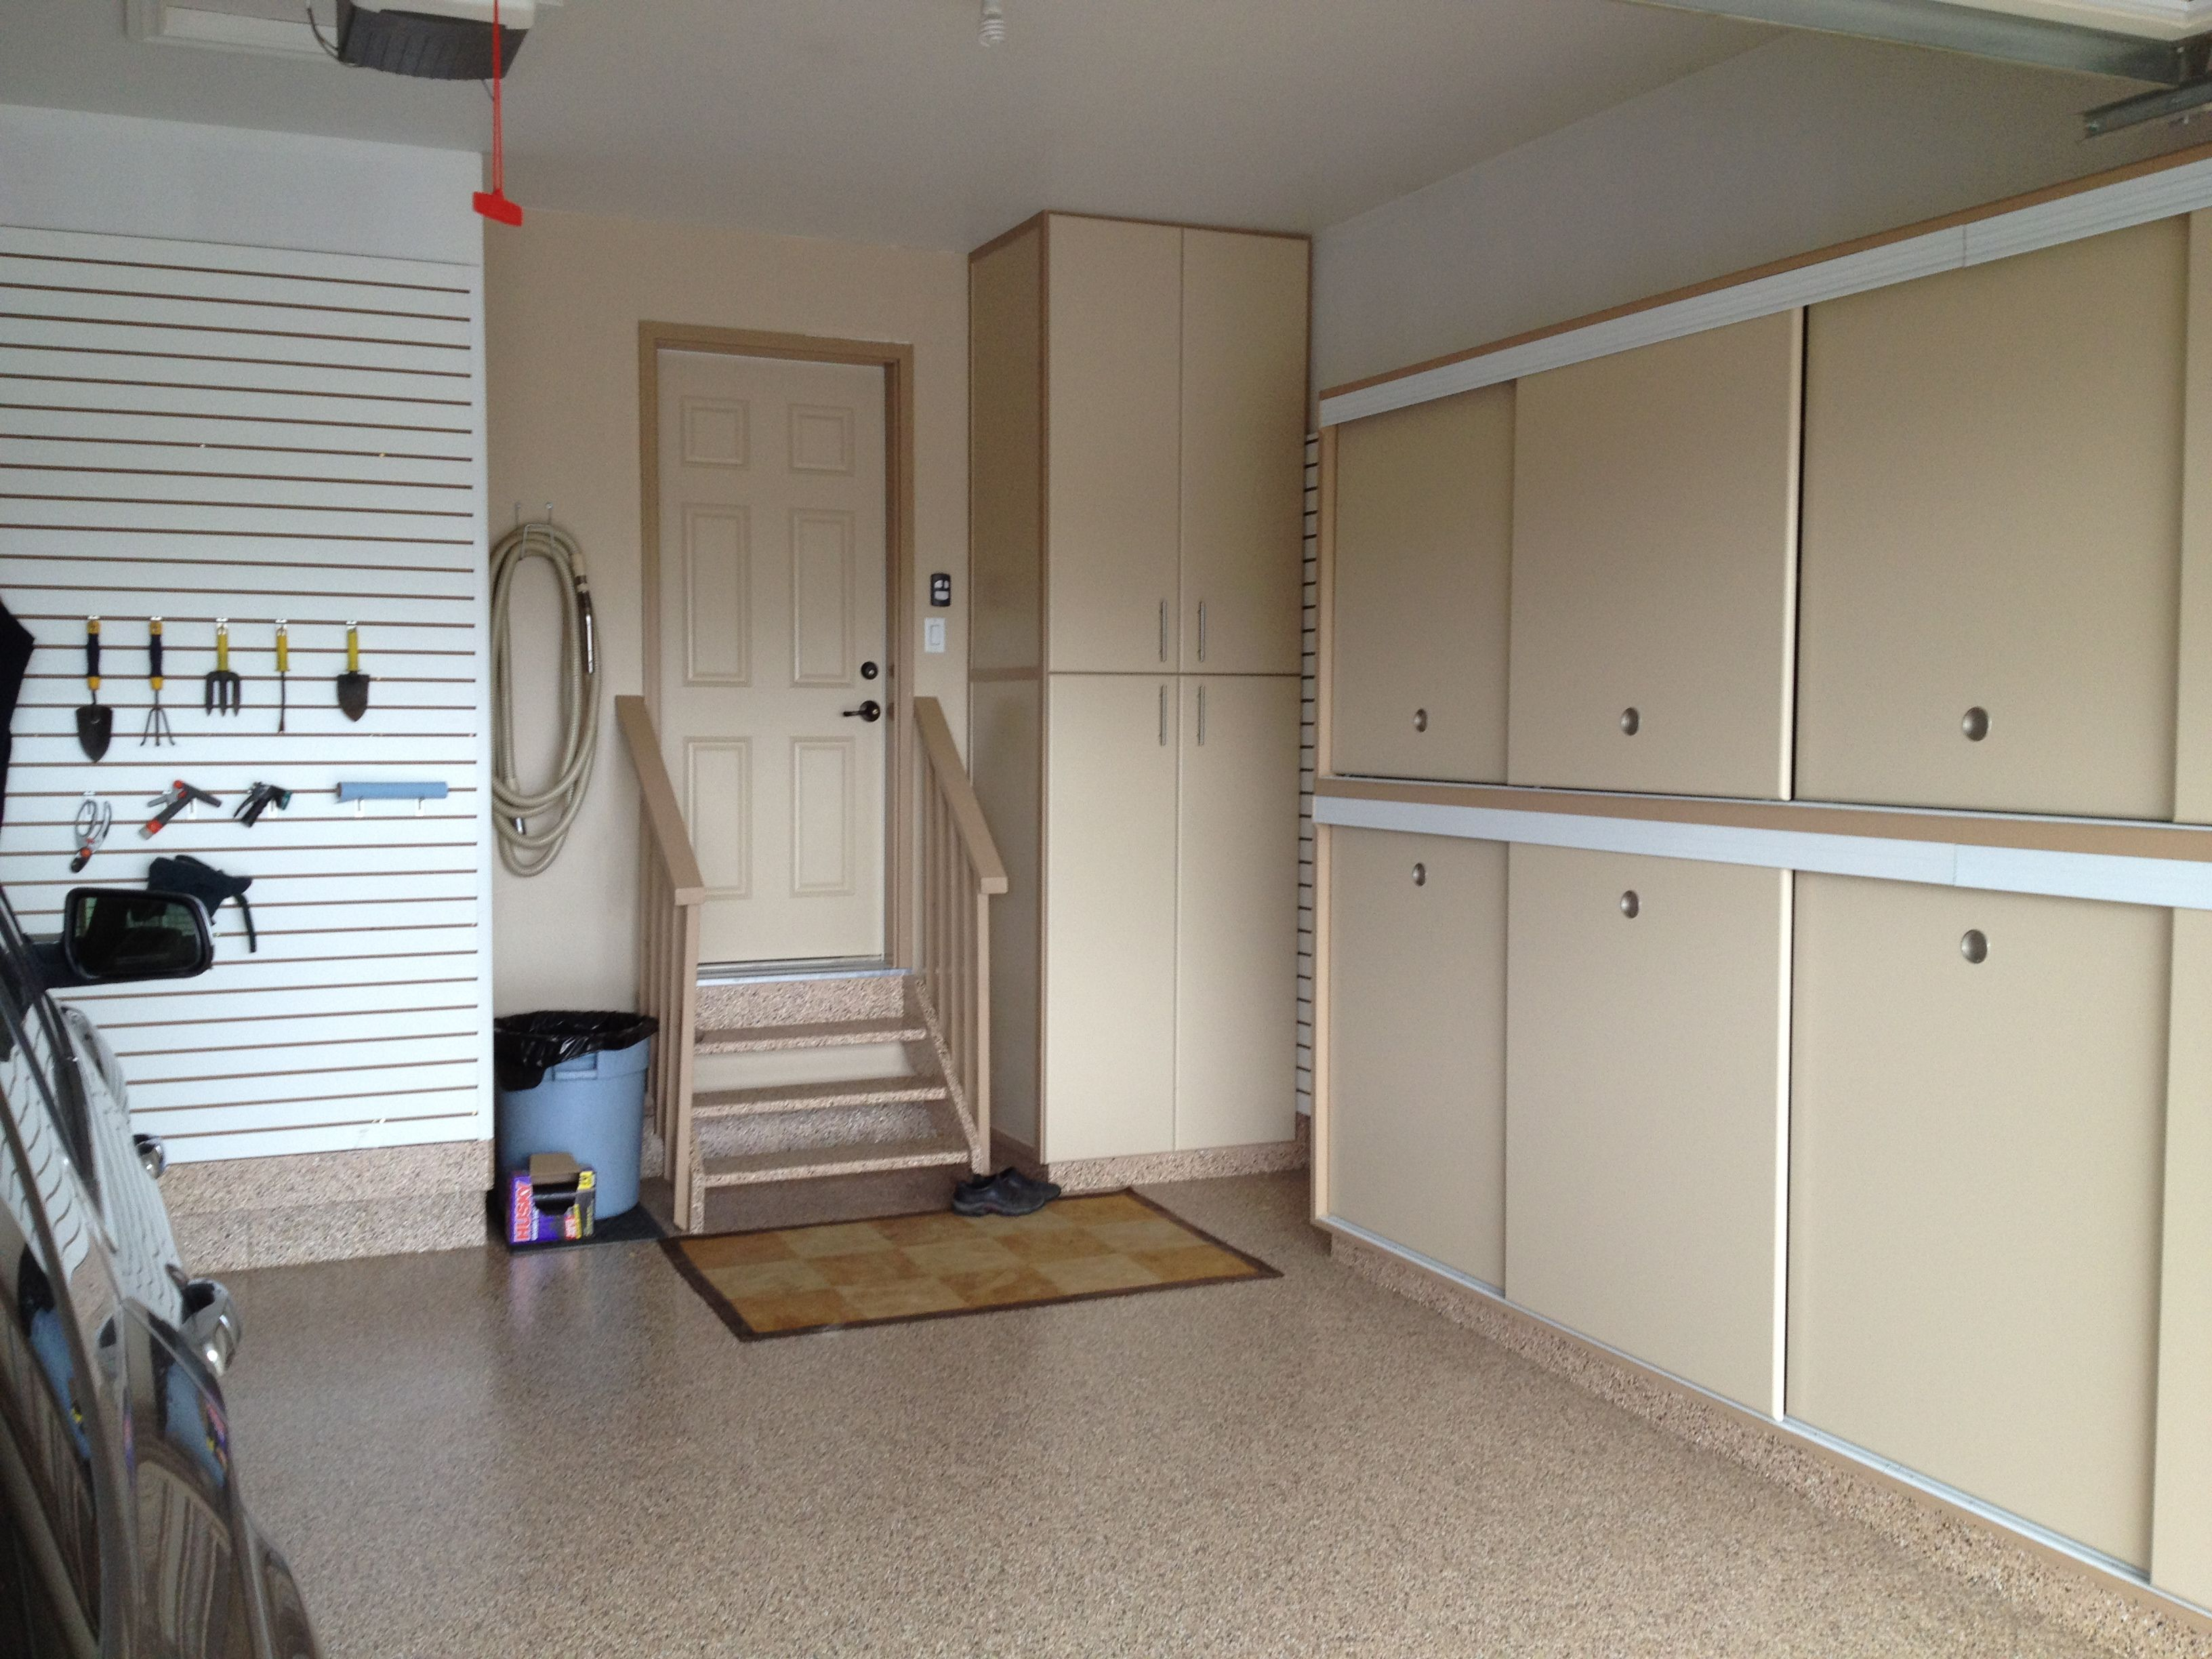 shelving mounted buy where system hanging overhead design depot organization wall garage gladiator to husky decoration storage home prefab tool best organisation modular steel systems cabinets